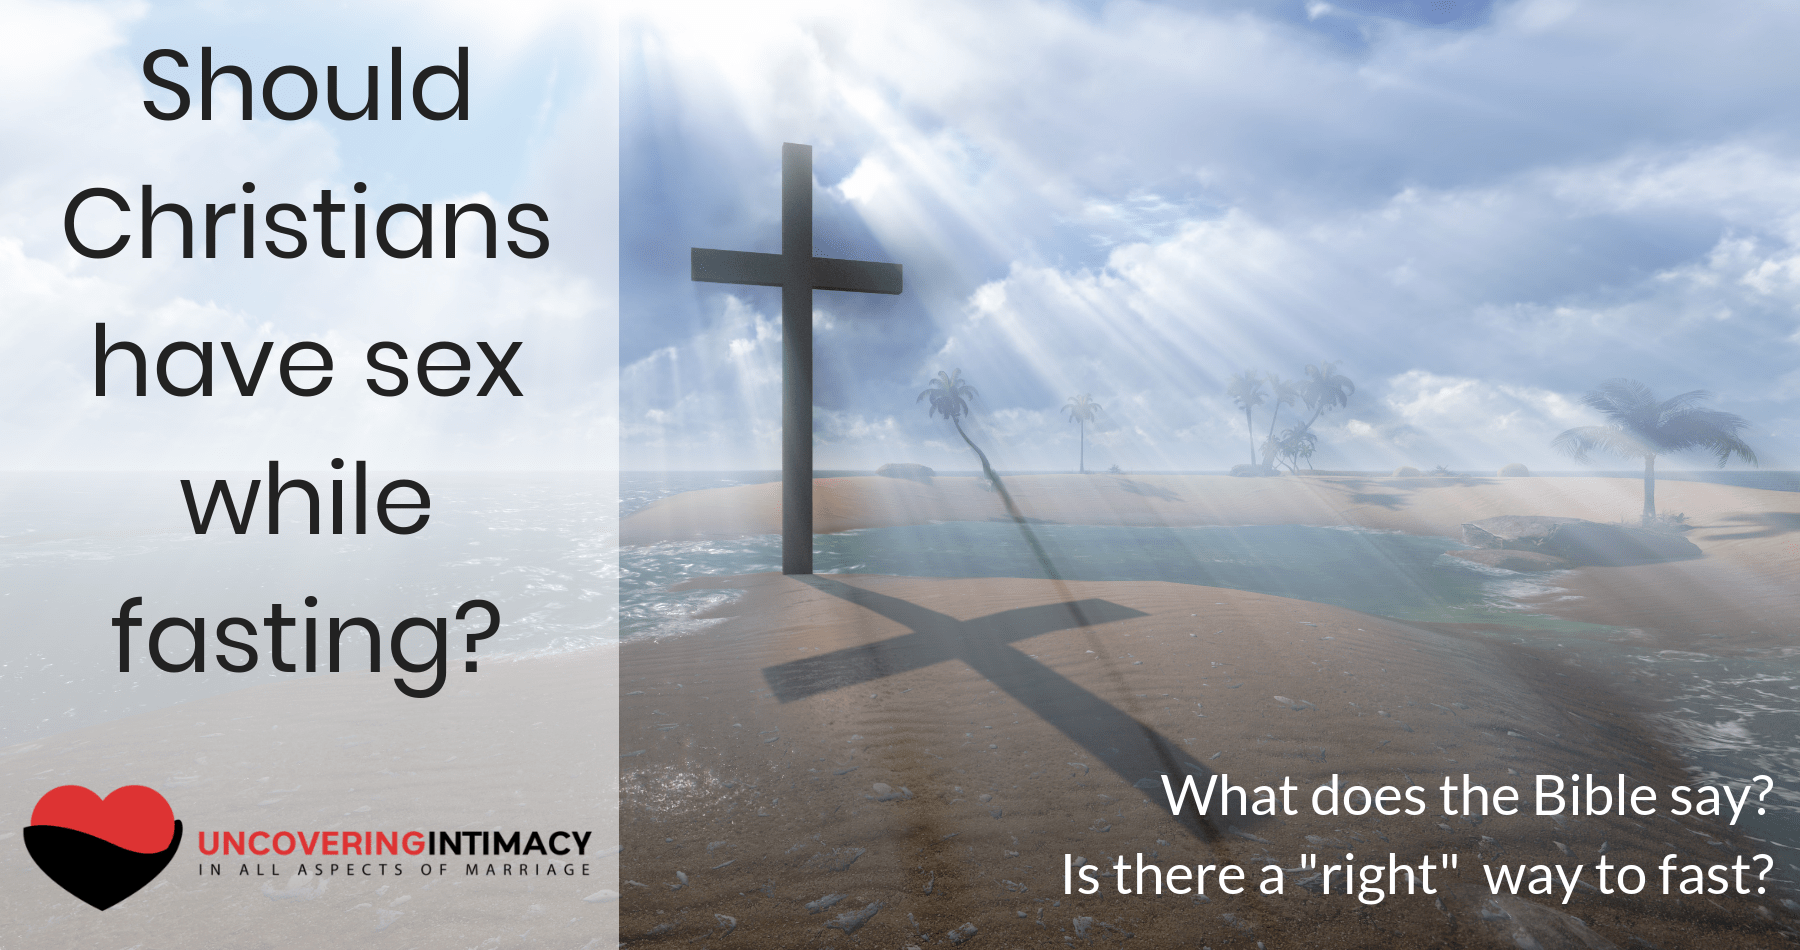 Should Christians have sex while fasting? - Uncovering Intimacy